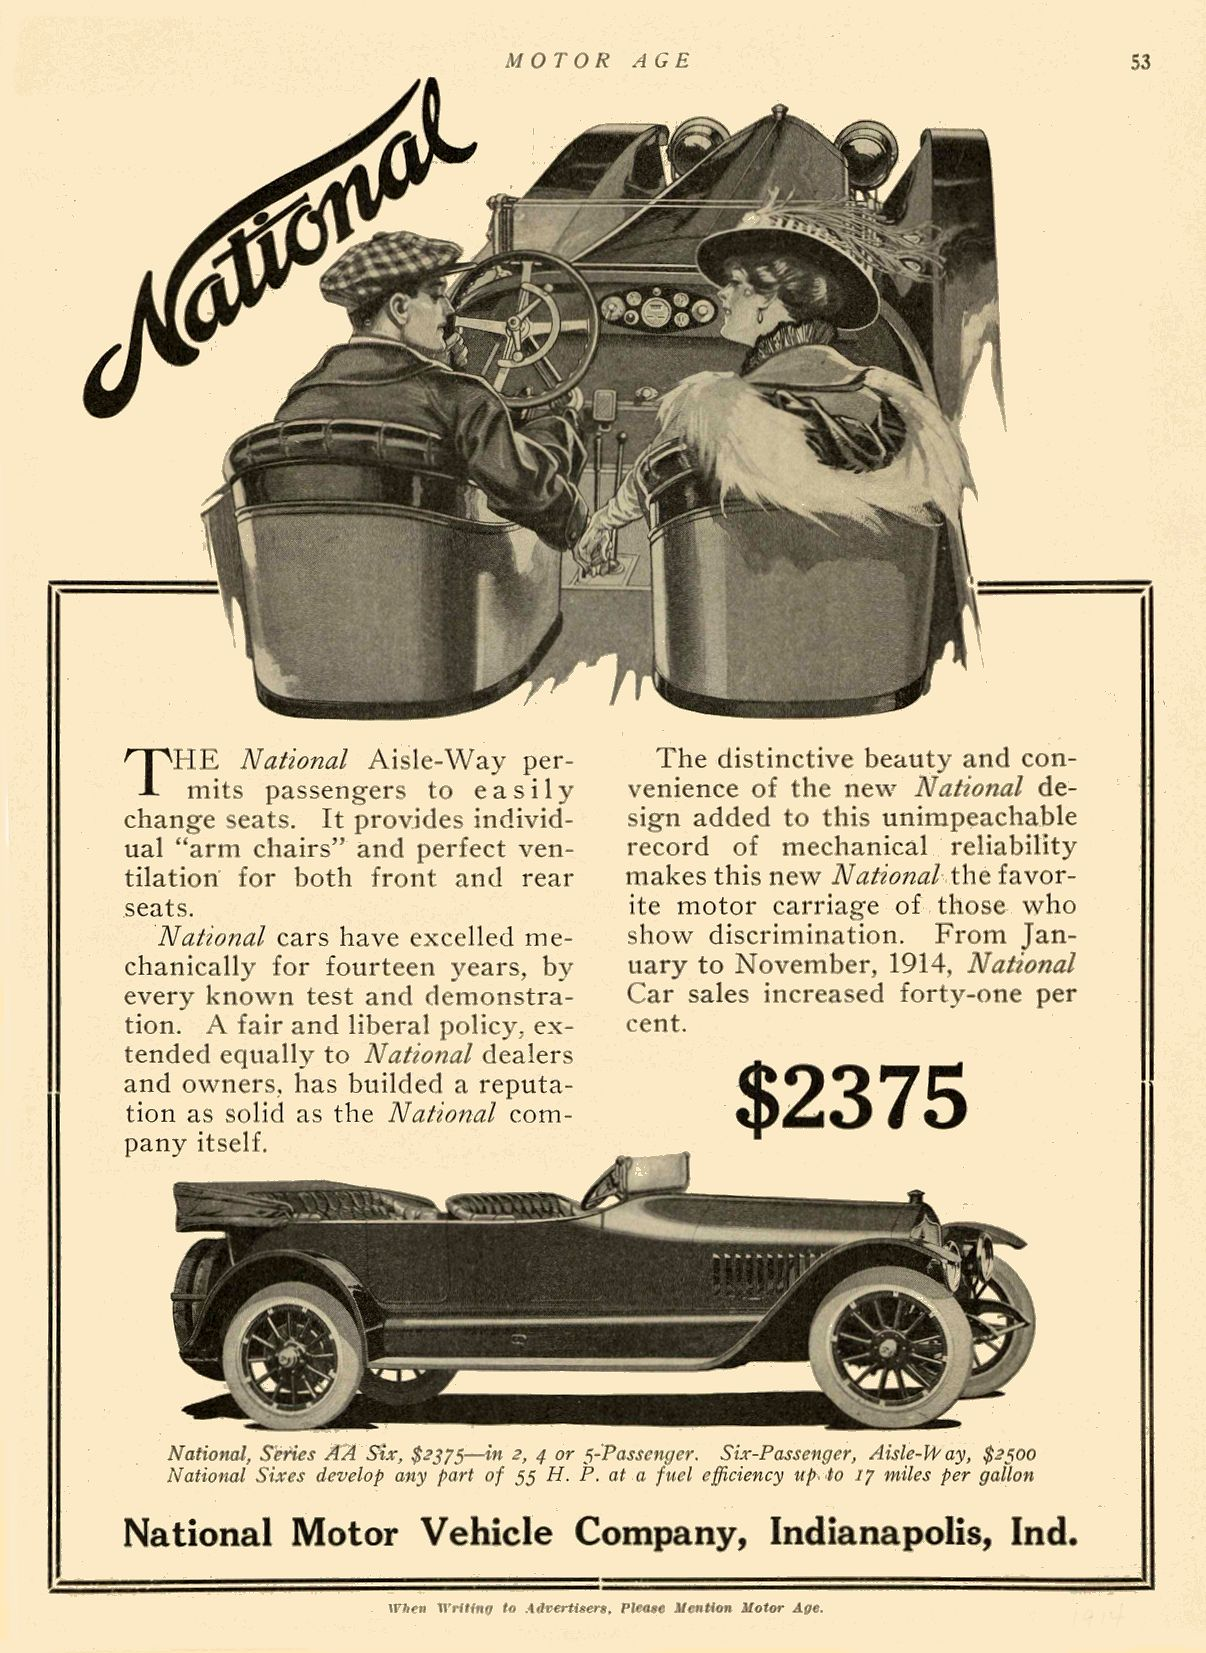 1914 NATIONAL National $2375 National Motor Vehicle Company Indianapolis, IND MOTOR AGE 1914 8″x11″ page 53